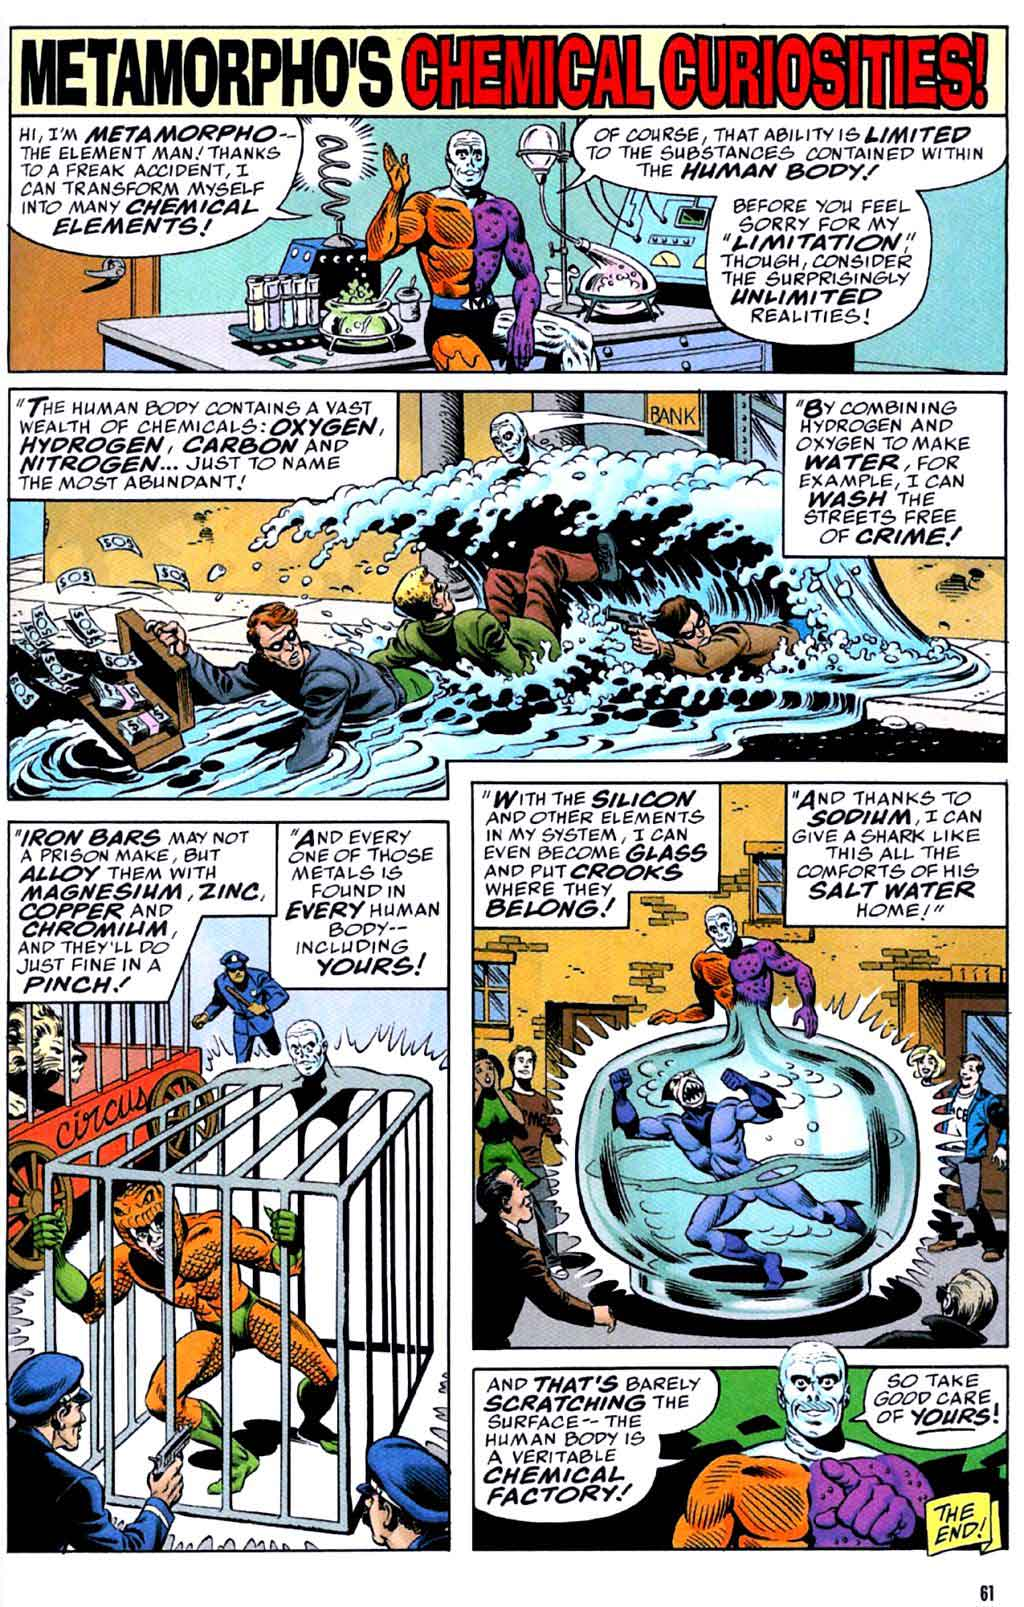 Metamorpho's Chemical Curiosities! by Brian Augstyn, Ramon Fradon & Karl Kesel